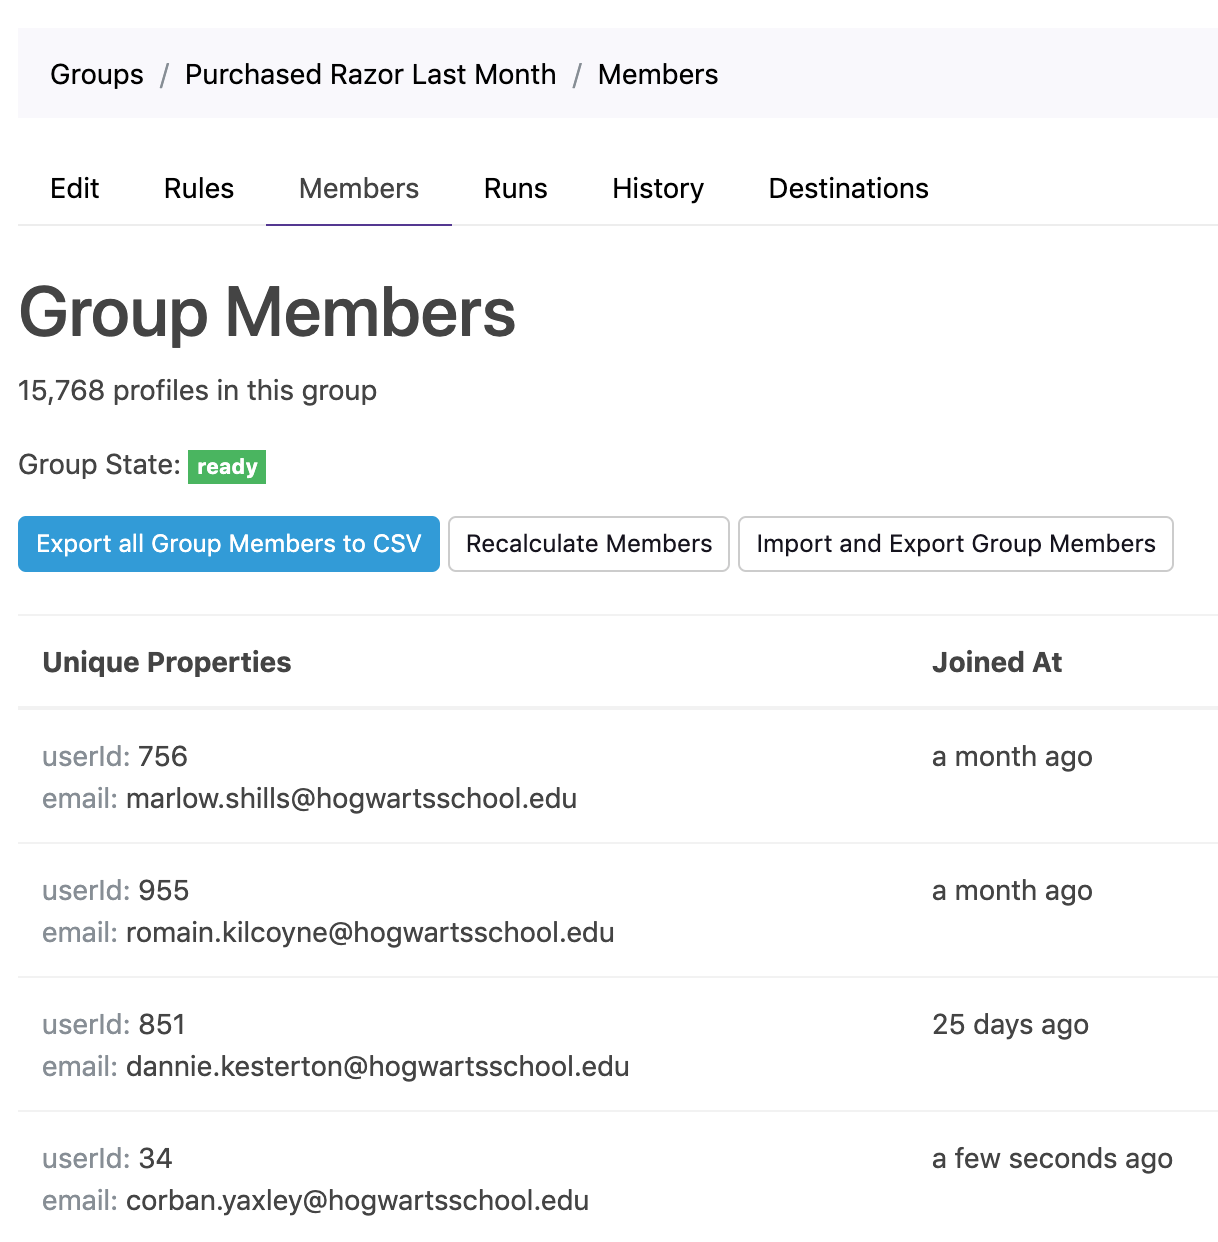 Grouparoo has exported everyone to the Mailchimp destination.